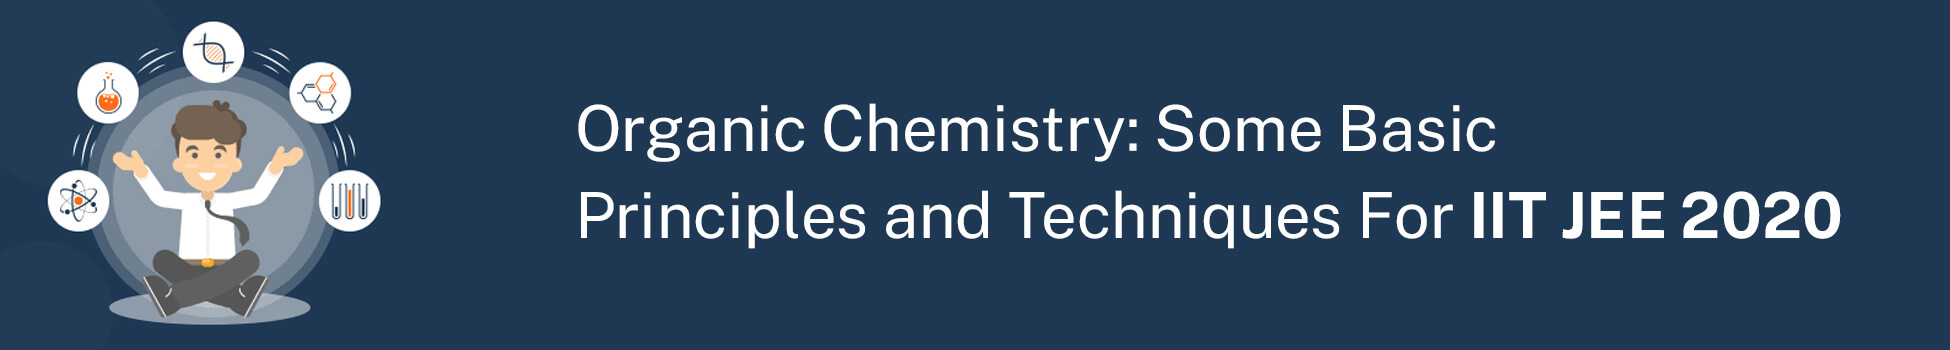 Organic Chemistry: Some Basic Principles and Techniques For IIT JEE 2020